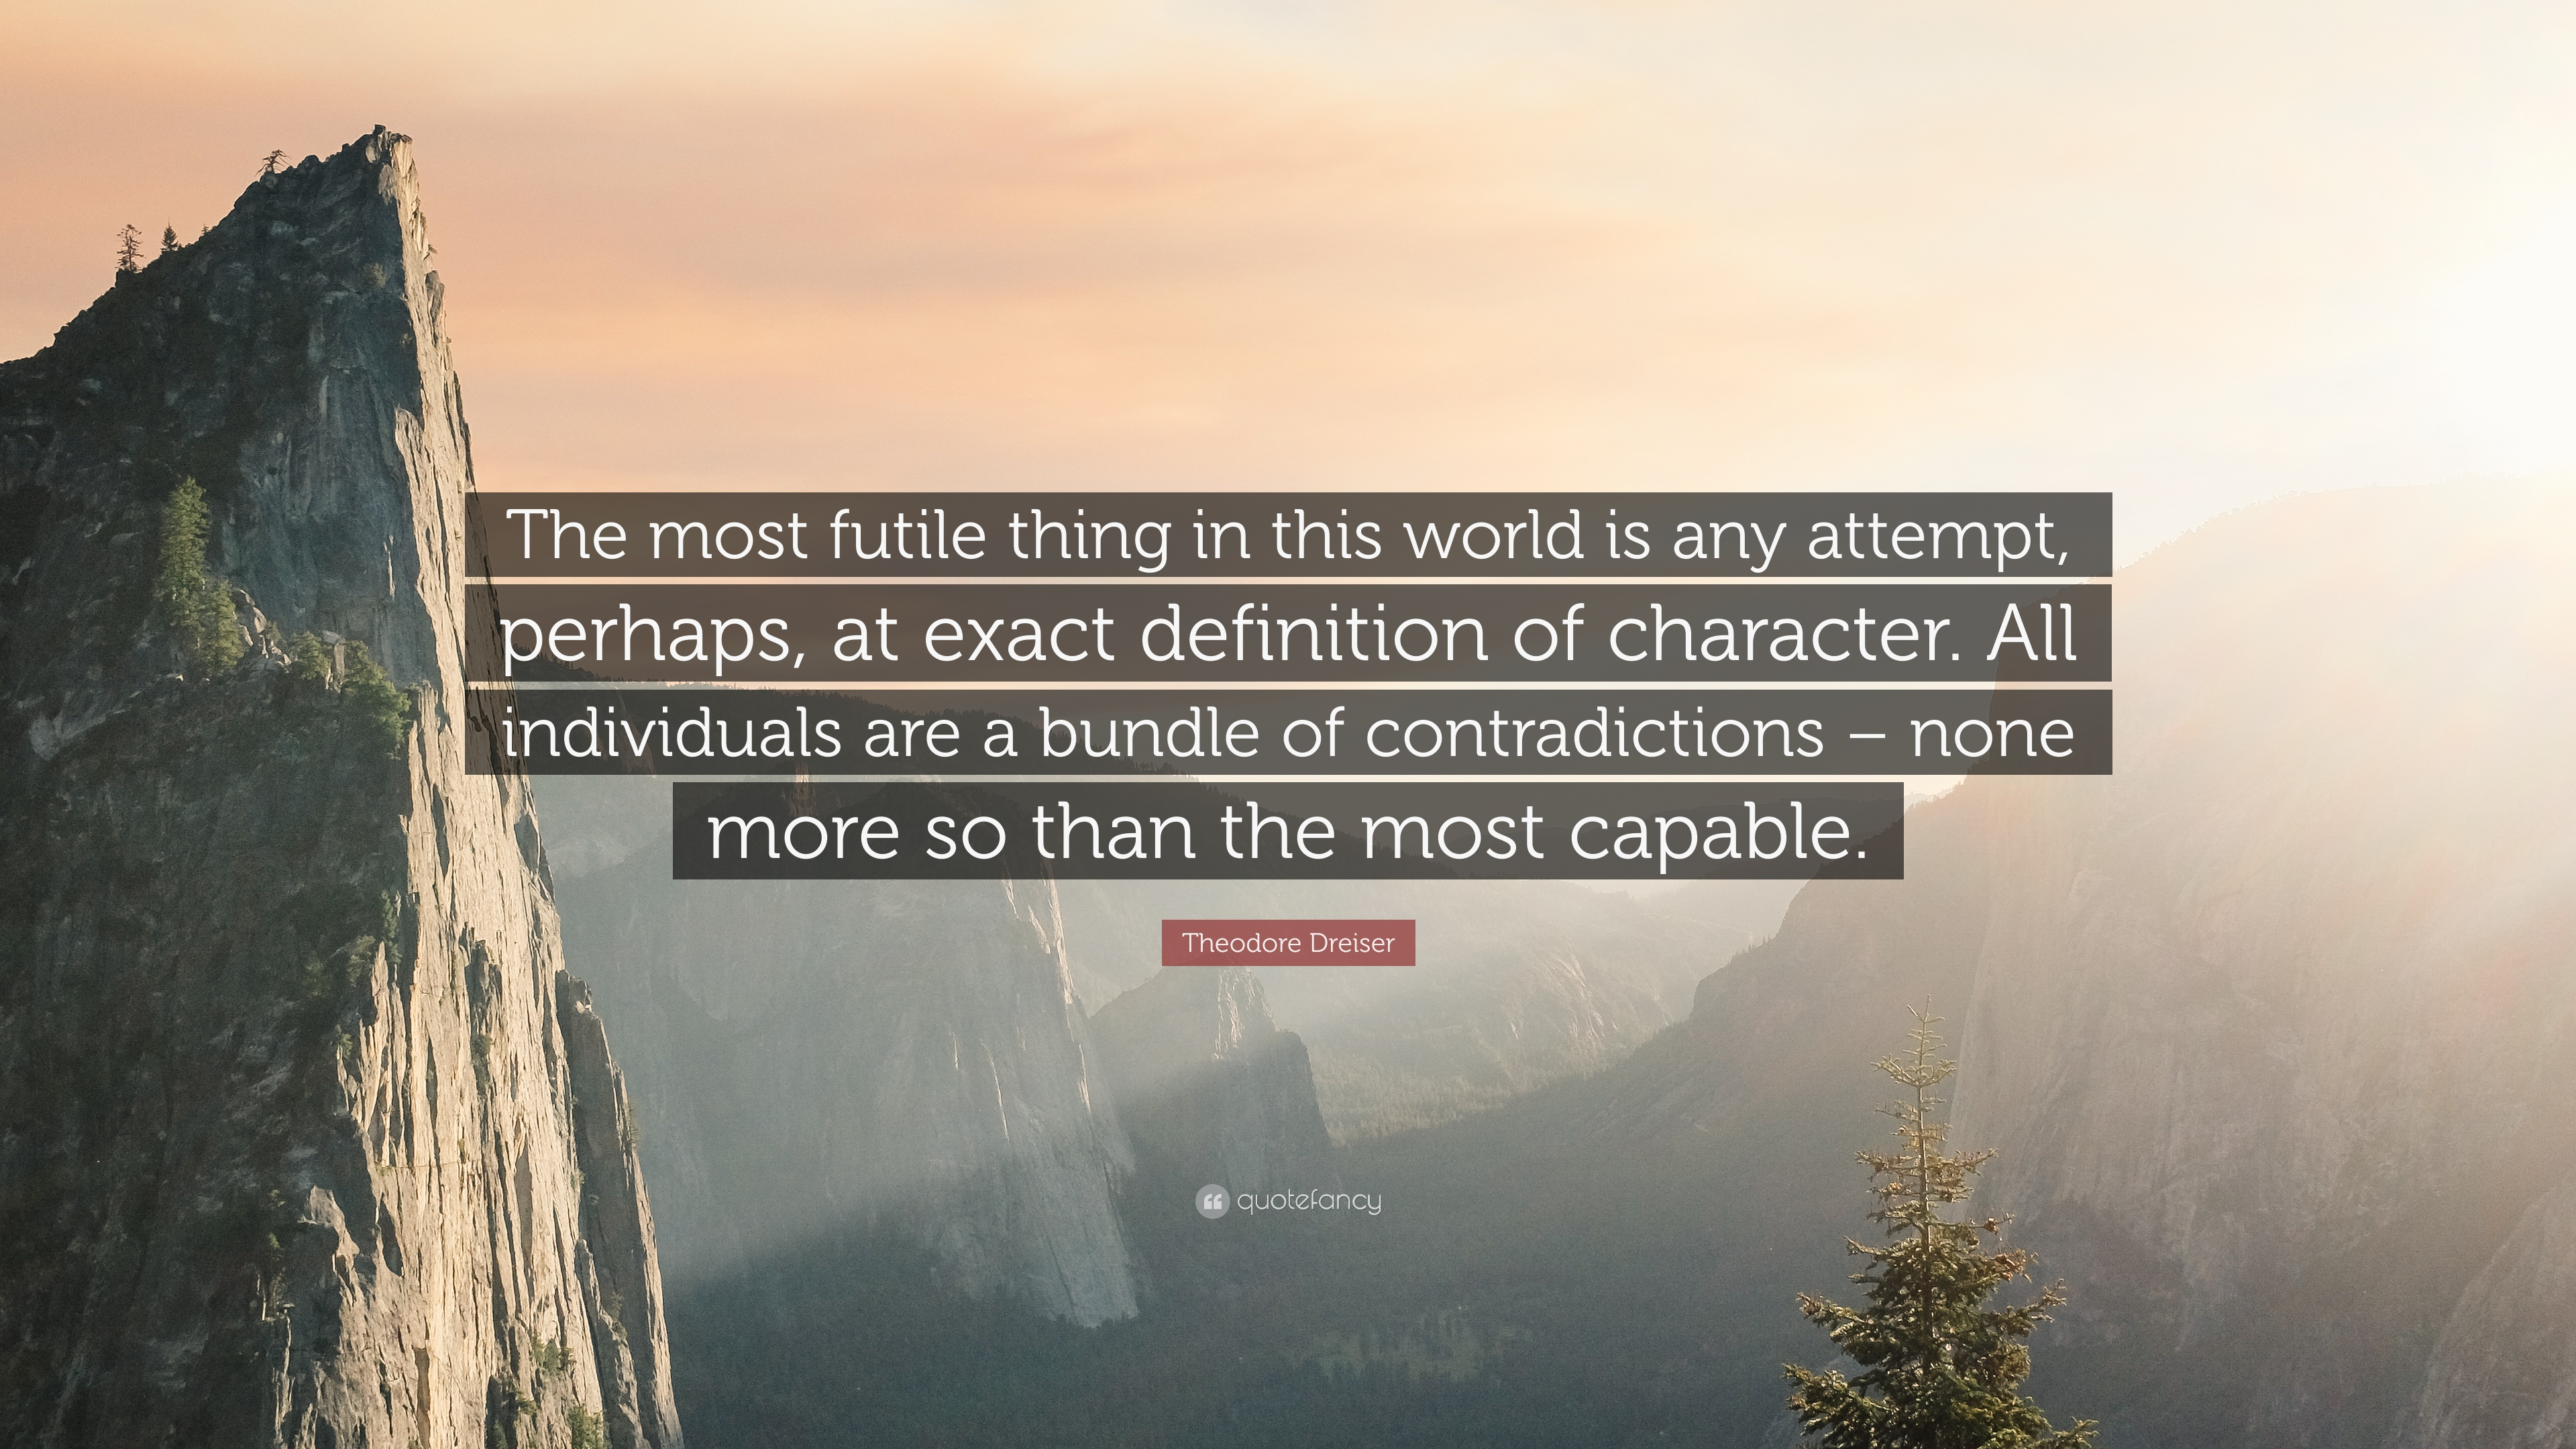 Theodore Dreiser Quote: U201cThe Most Futile Thing In This World Is Any Attempt,